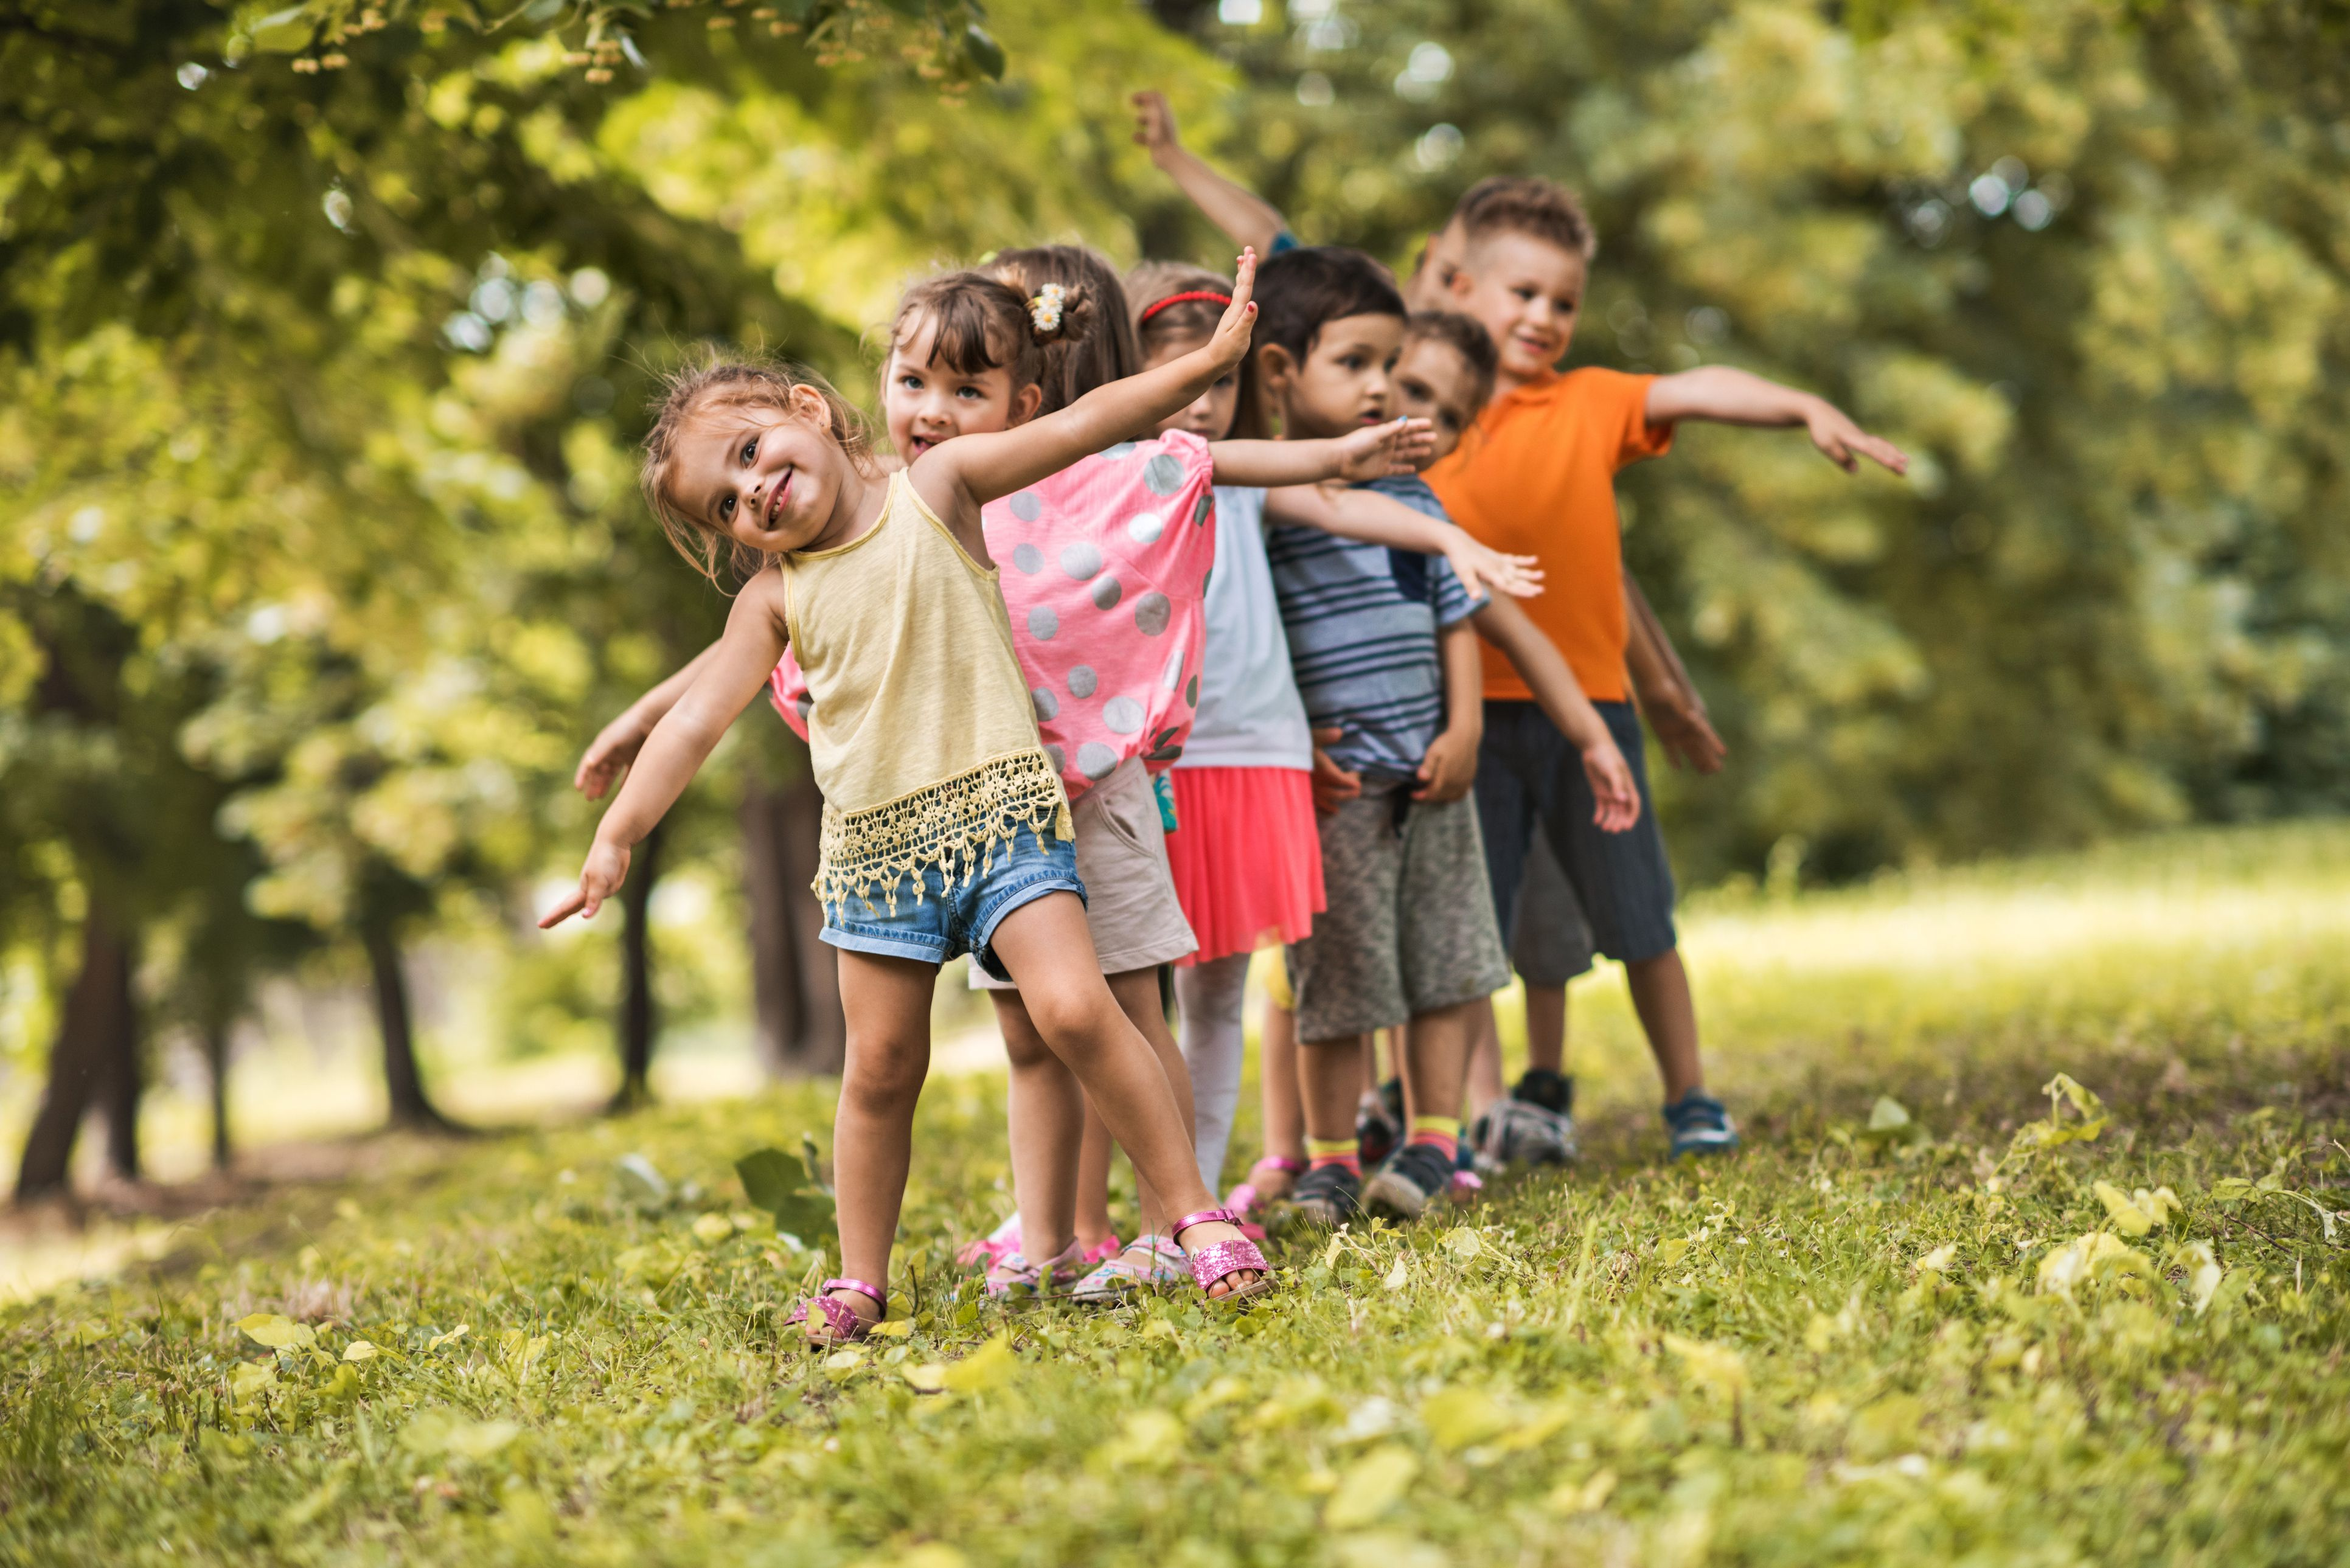 Group of happy kids having fun in the park.